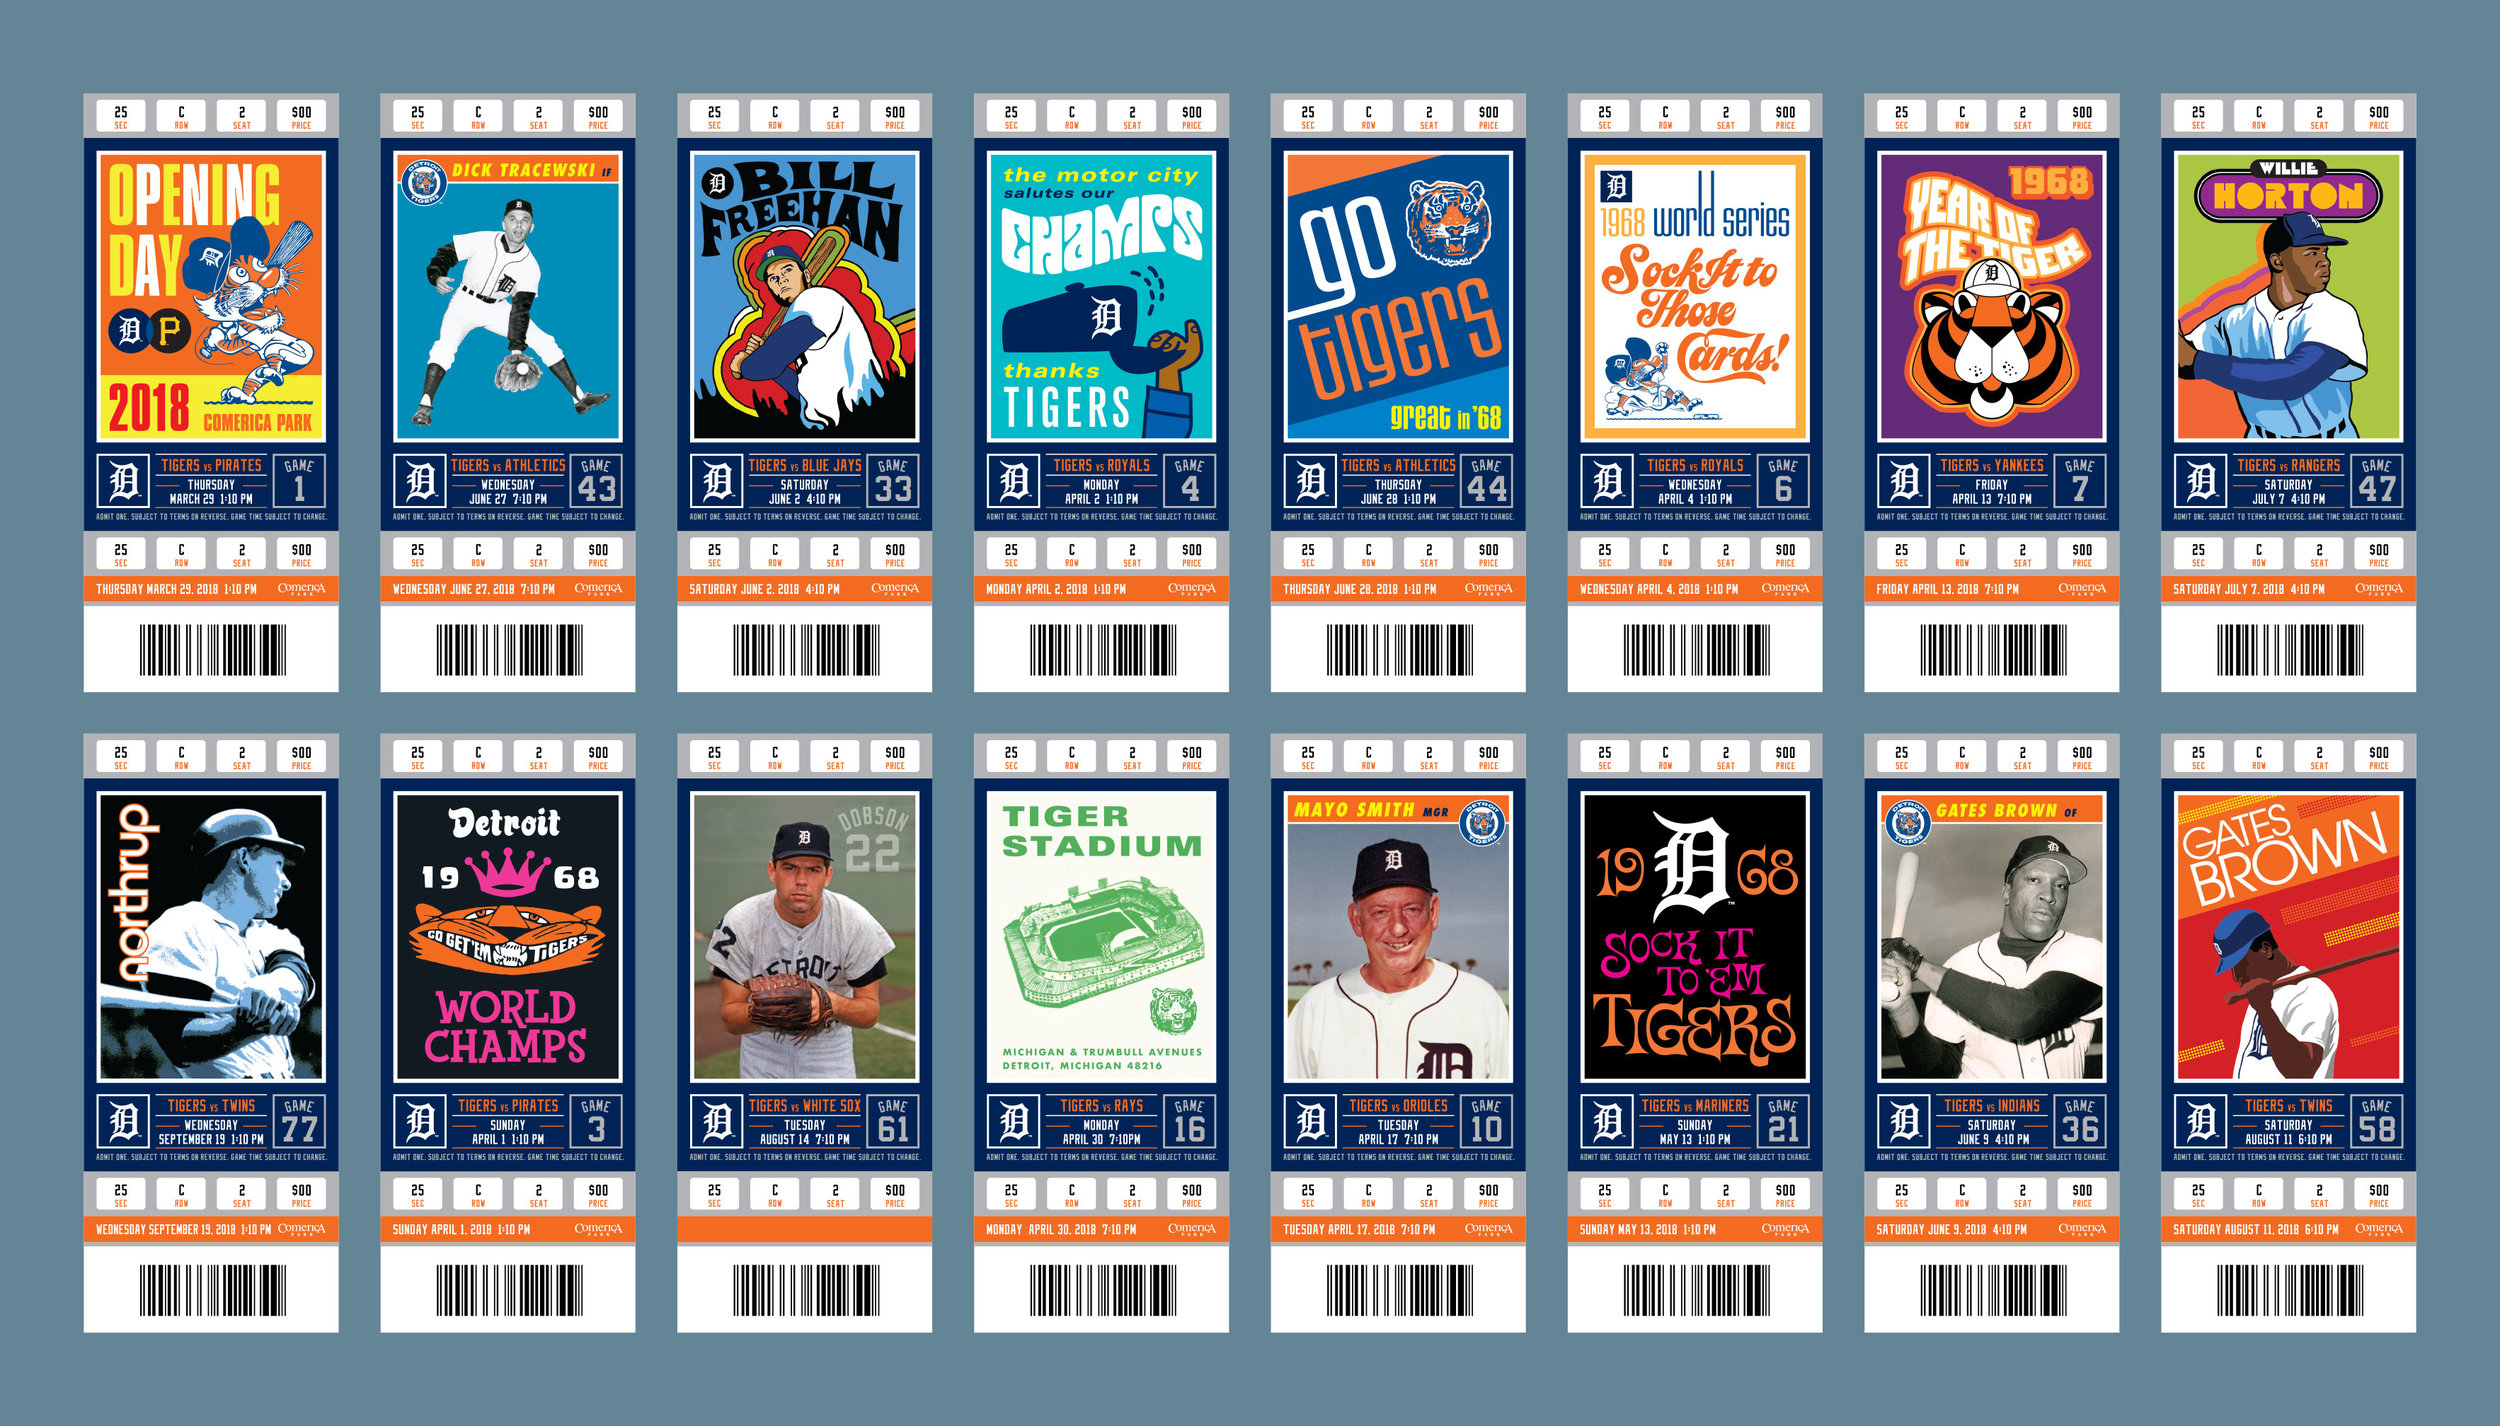 2018-TIGERS_TICKETS.jpg